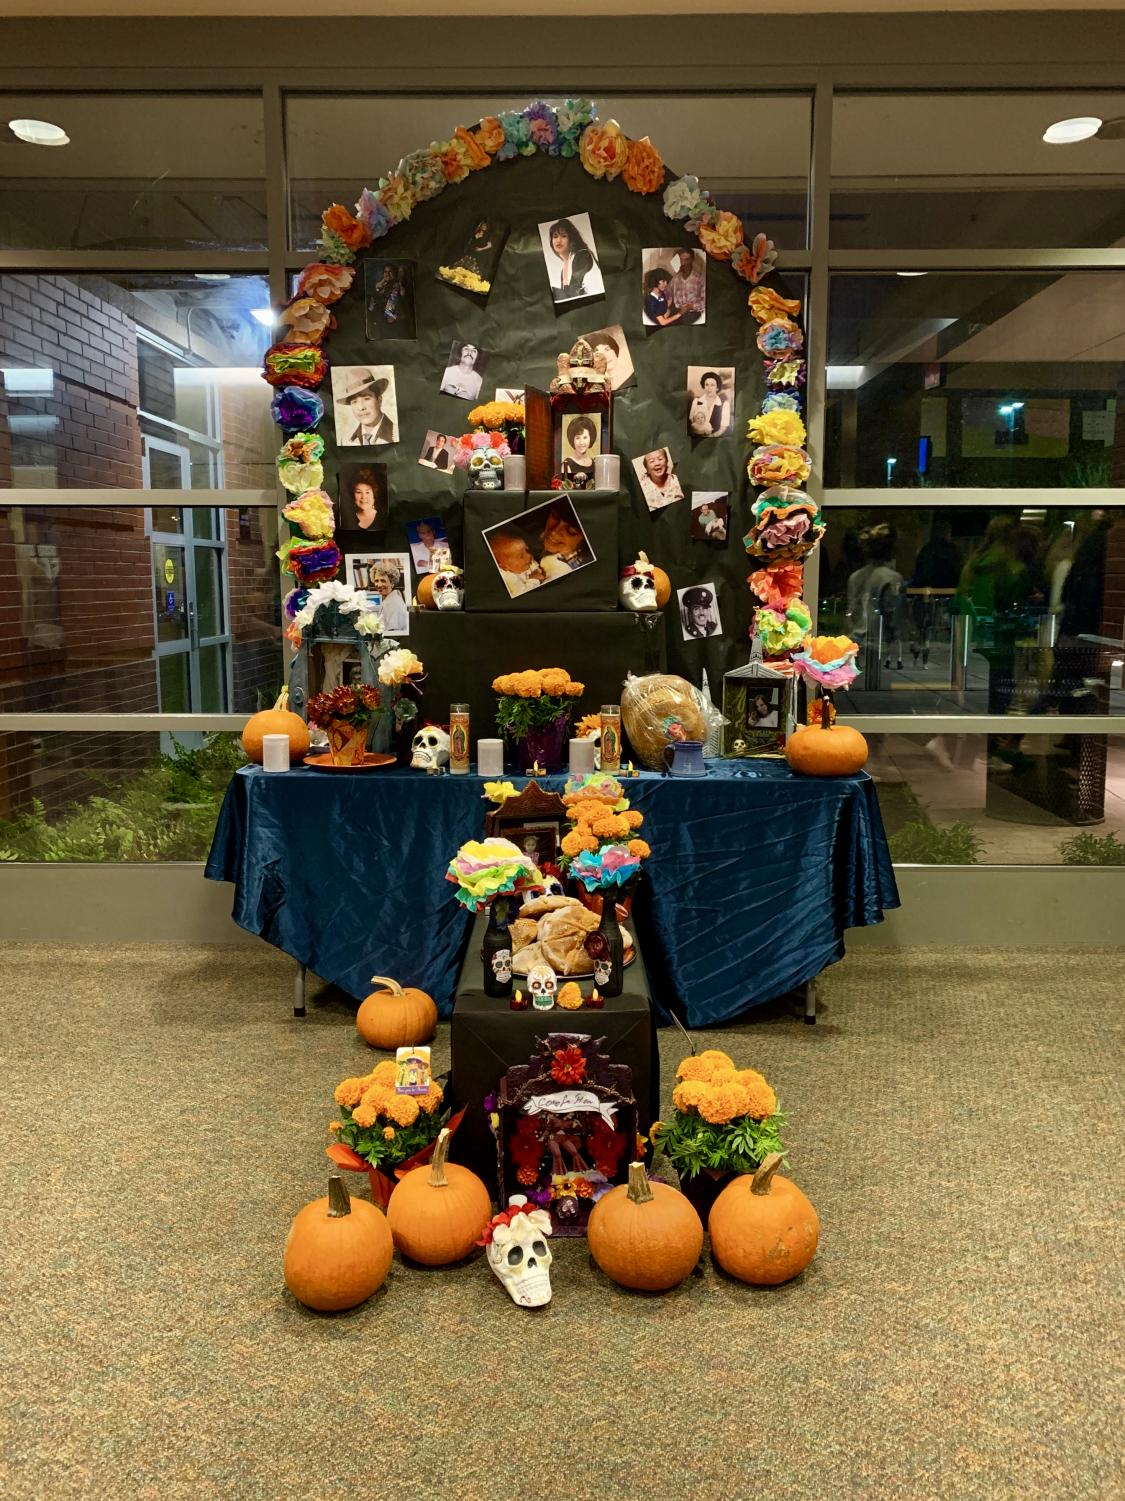 The Ofrenda created by MEChA and NAHS students, featuring celebrities, family, and friends who have passed away.